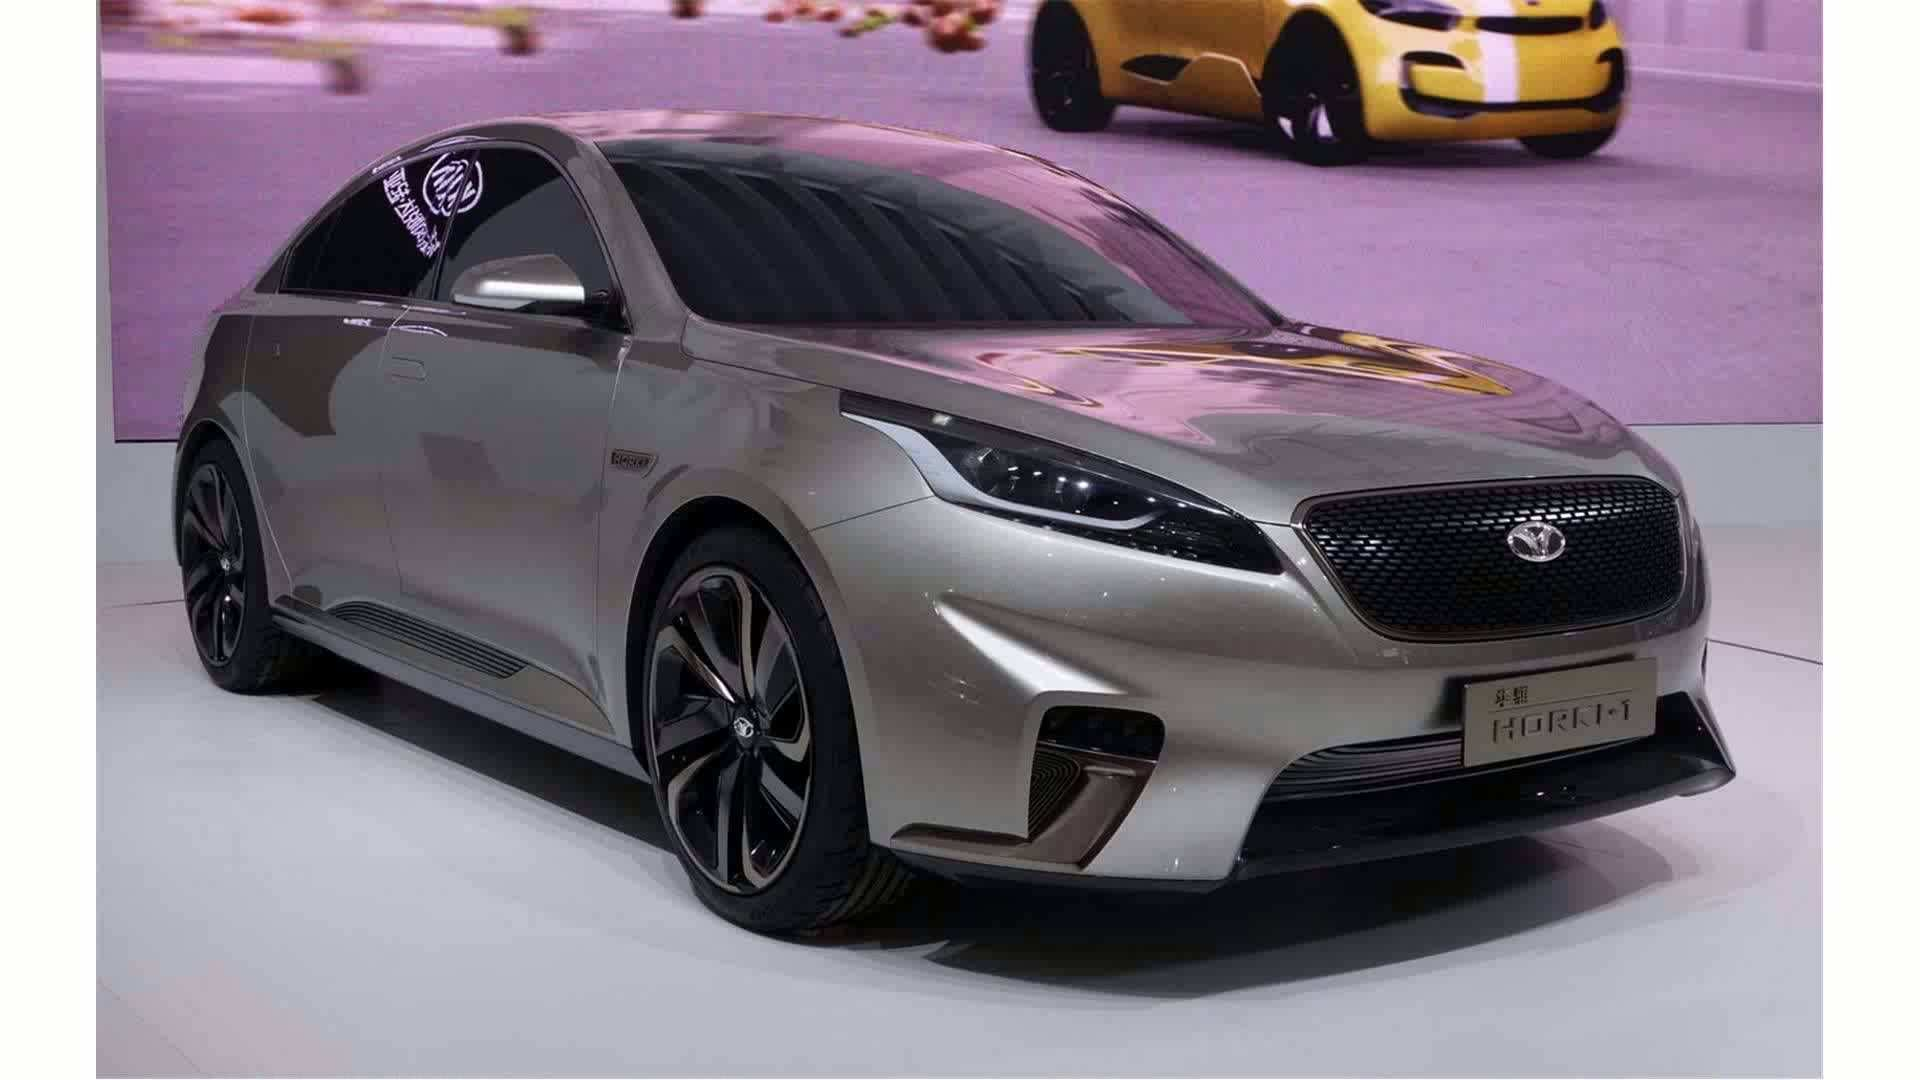 89 Concept of Kia K3 2020 Specs with Kia K3 2020